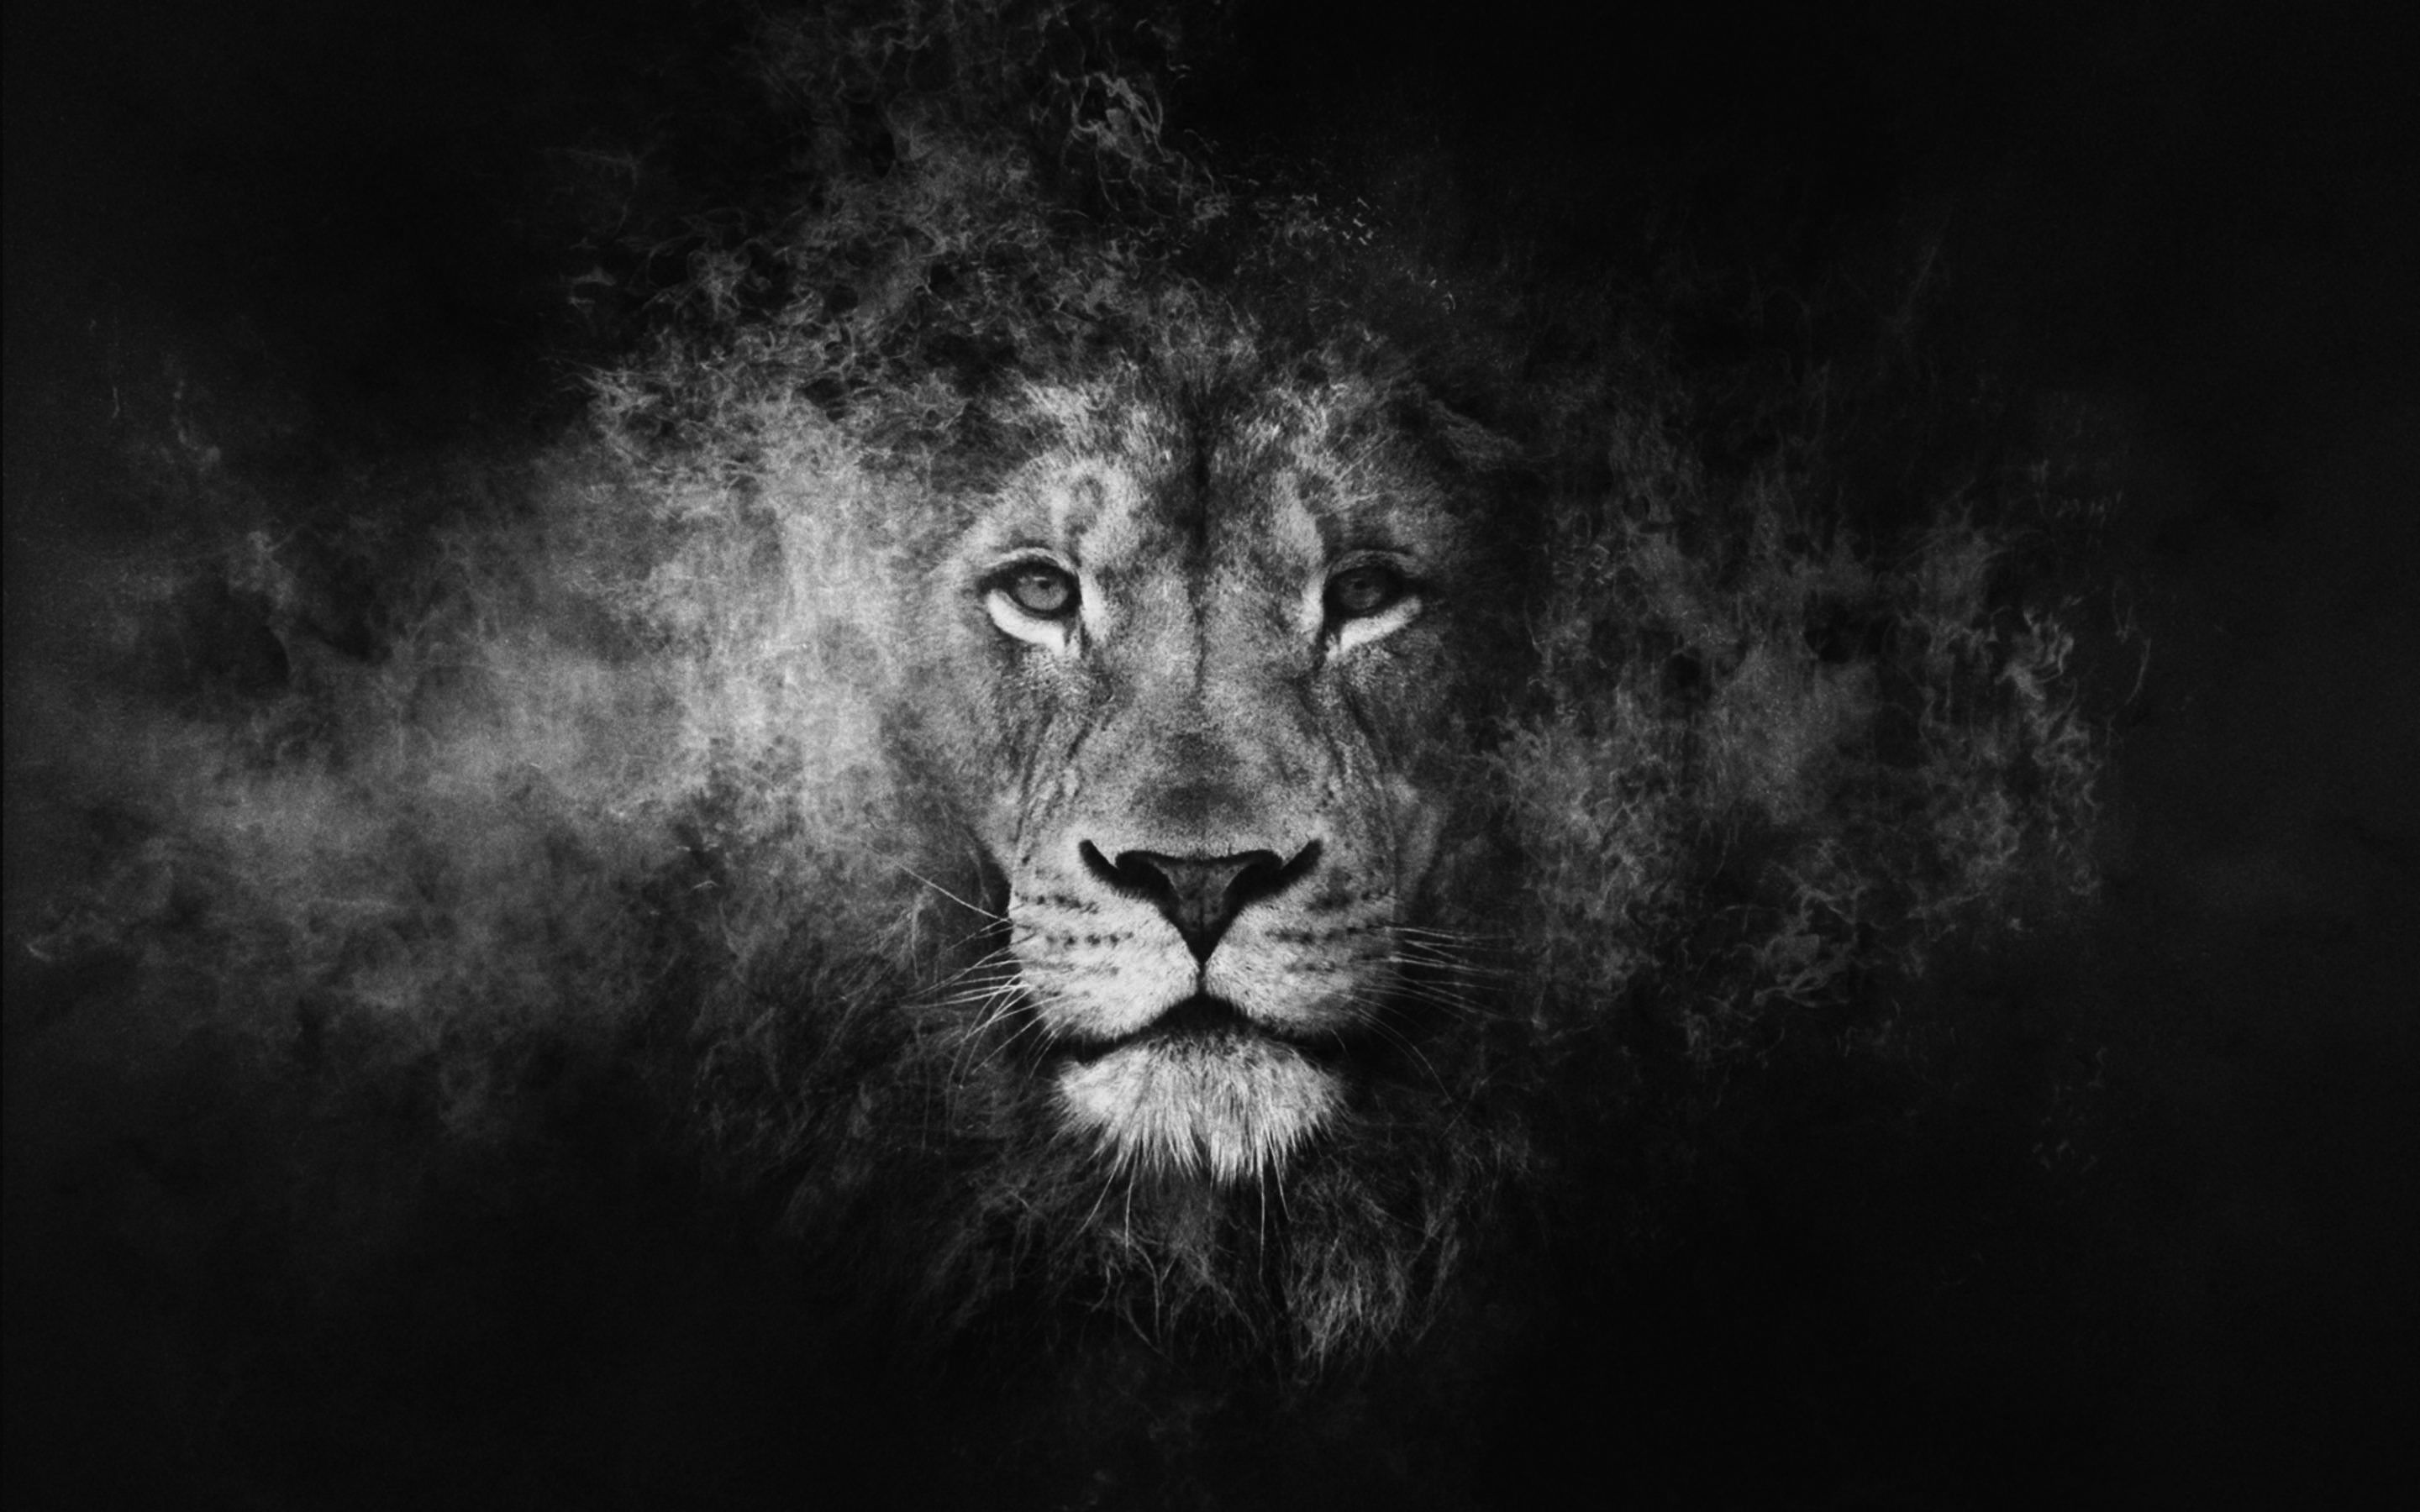 Lion Black And White Wallpaper Phone On Wallpaper 1080p Hd